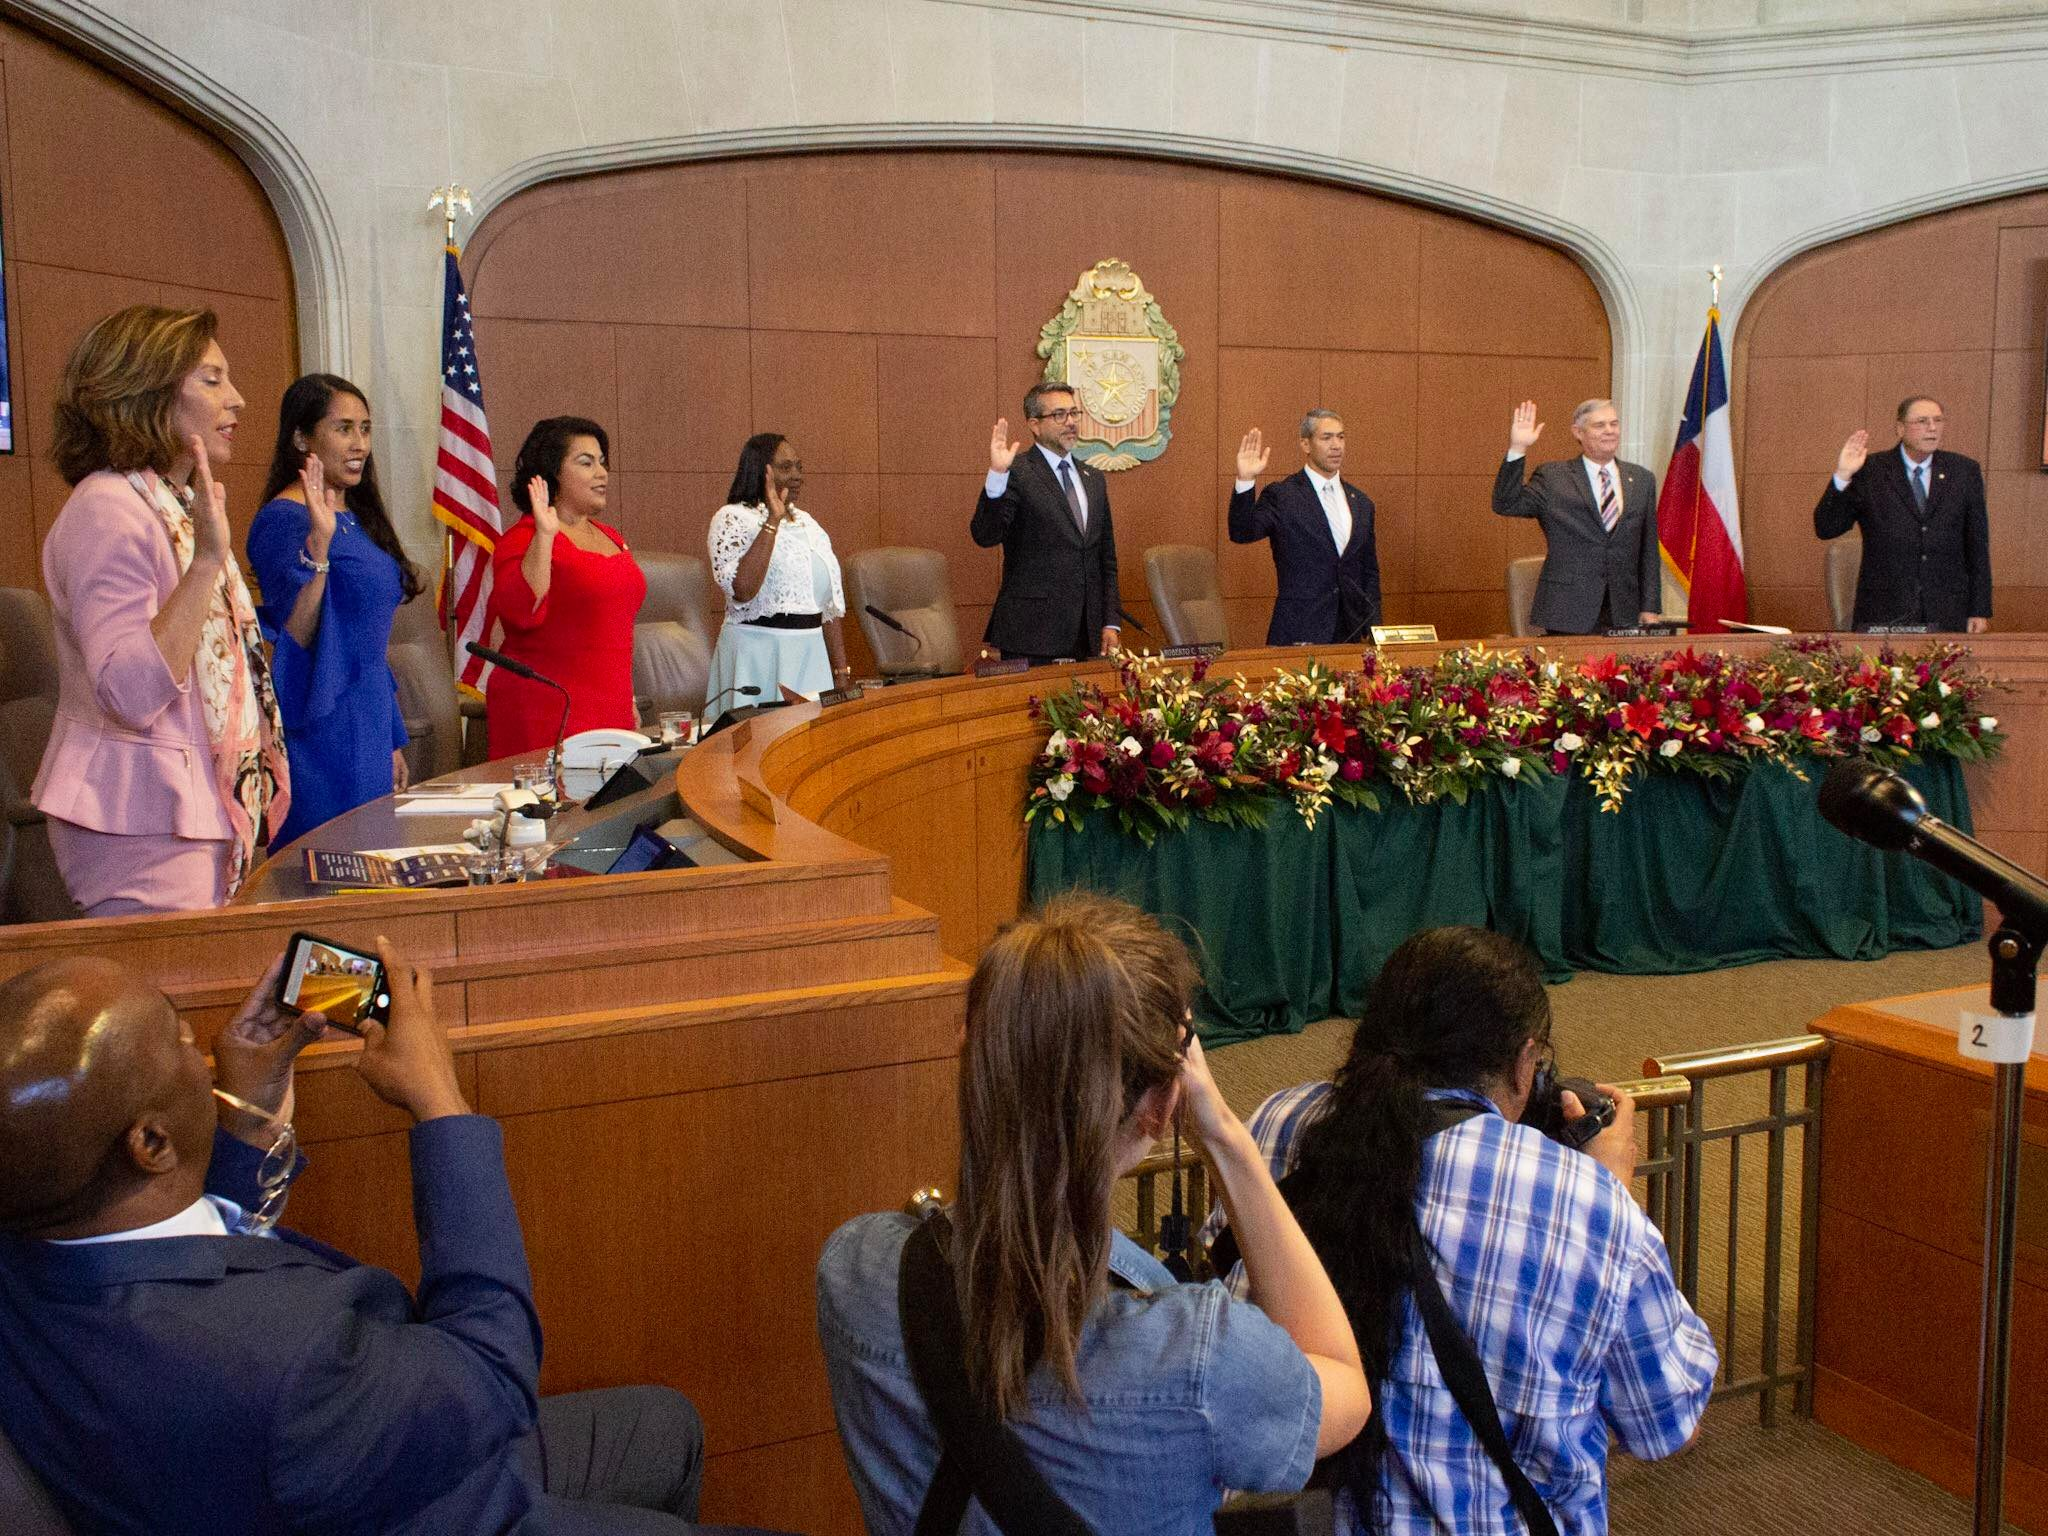 The new council members take their oath of office. (Photo by  William TImmerman )